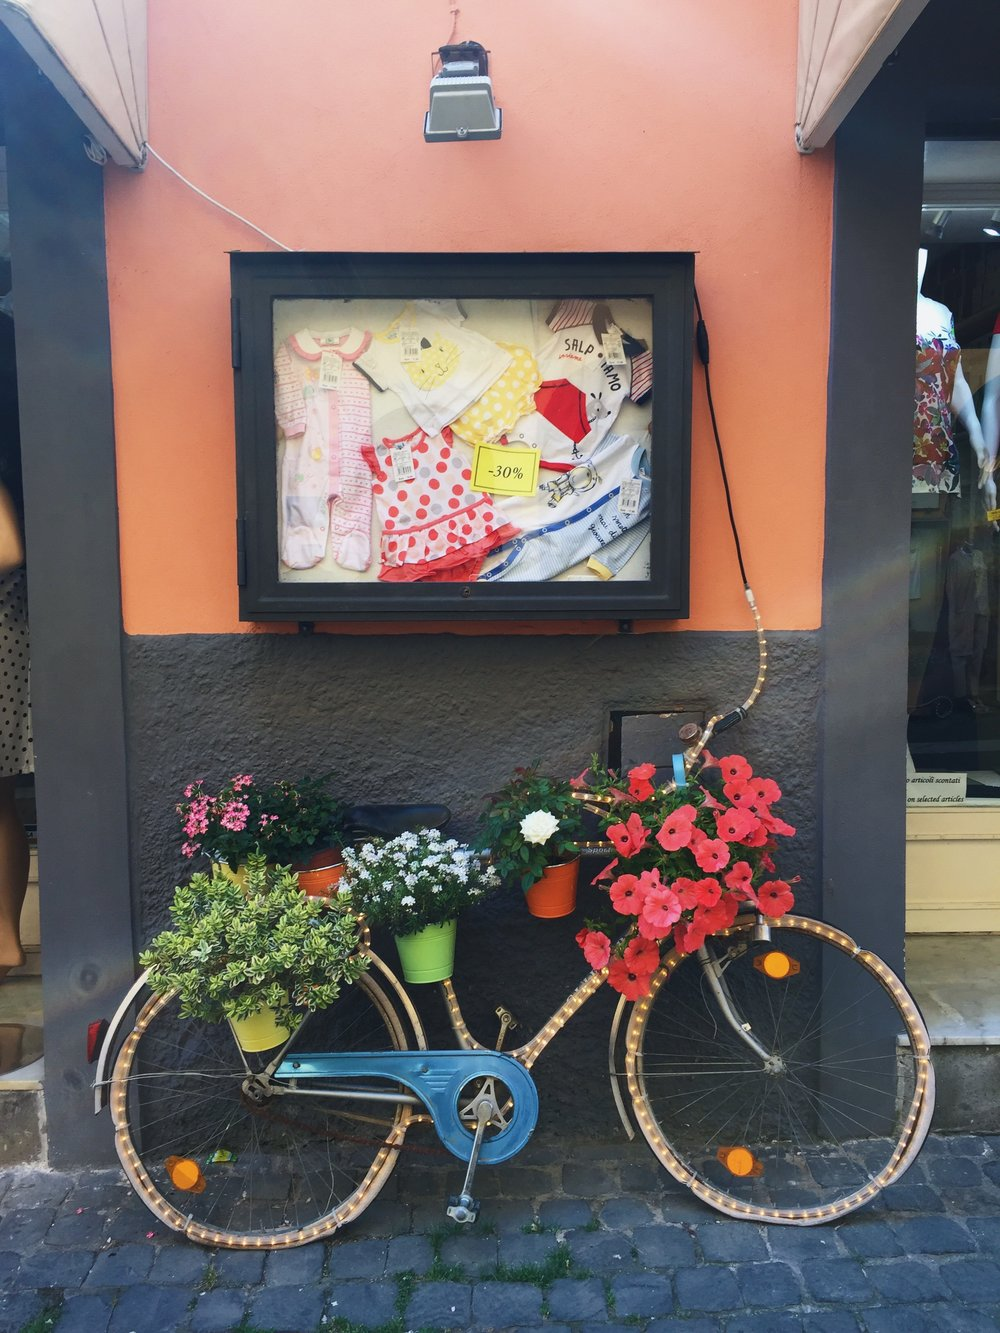 - If you look closely, there is so much detail that goes into these lovely garden bikes. From their colors to their plants, you can tell a lot of thought goes into each decoration.